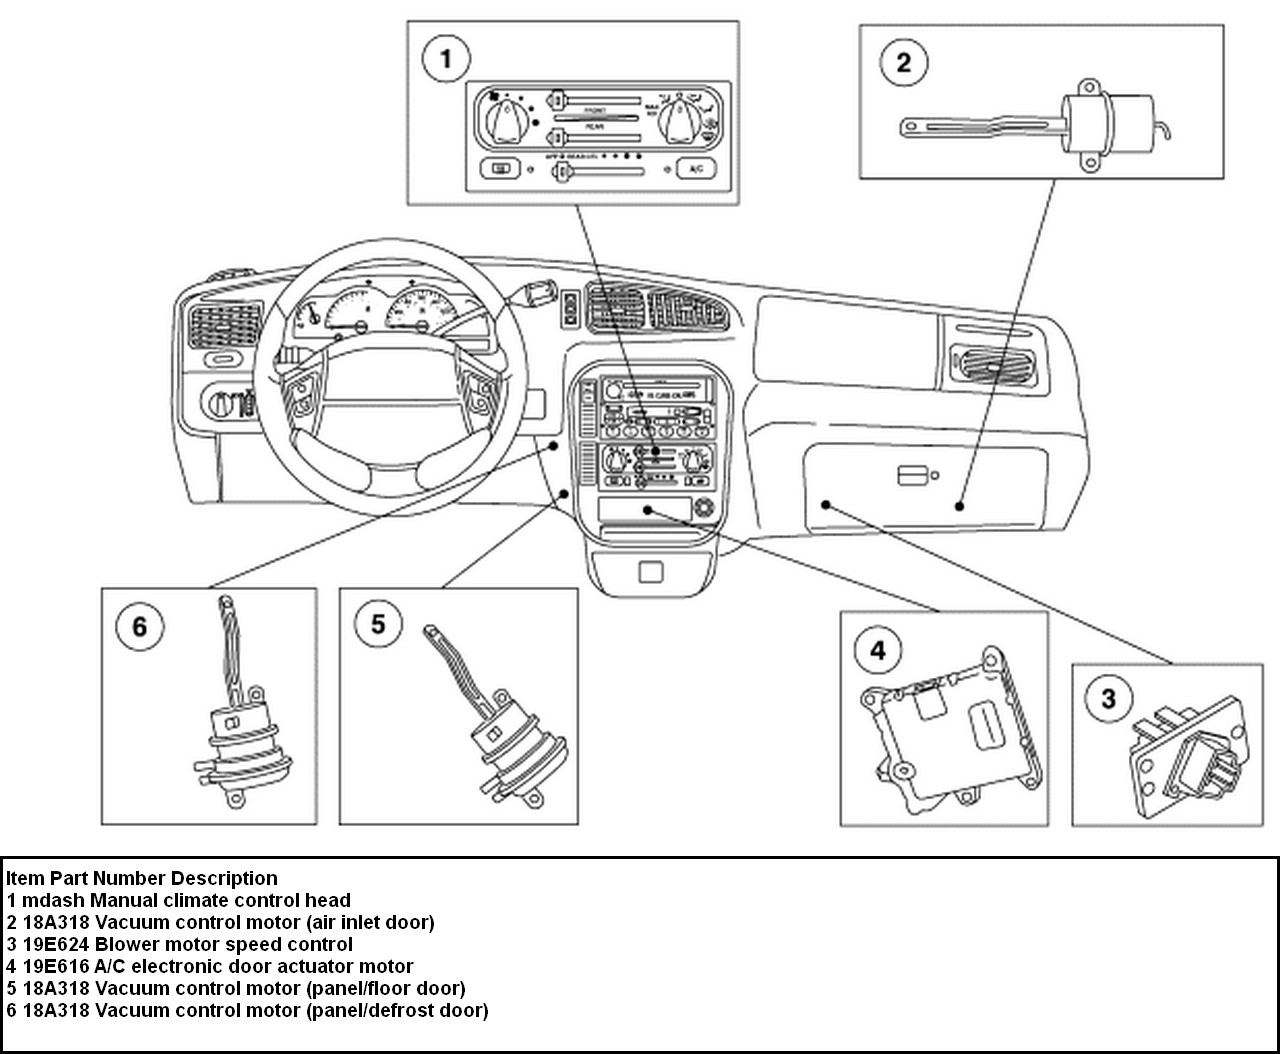 2012 ford f150 vacuum diagram html